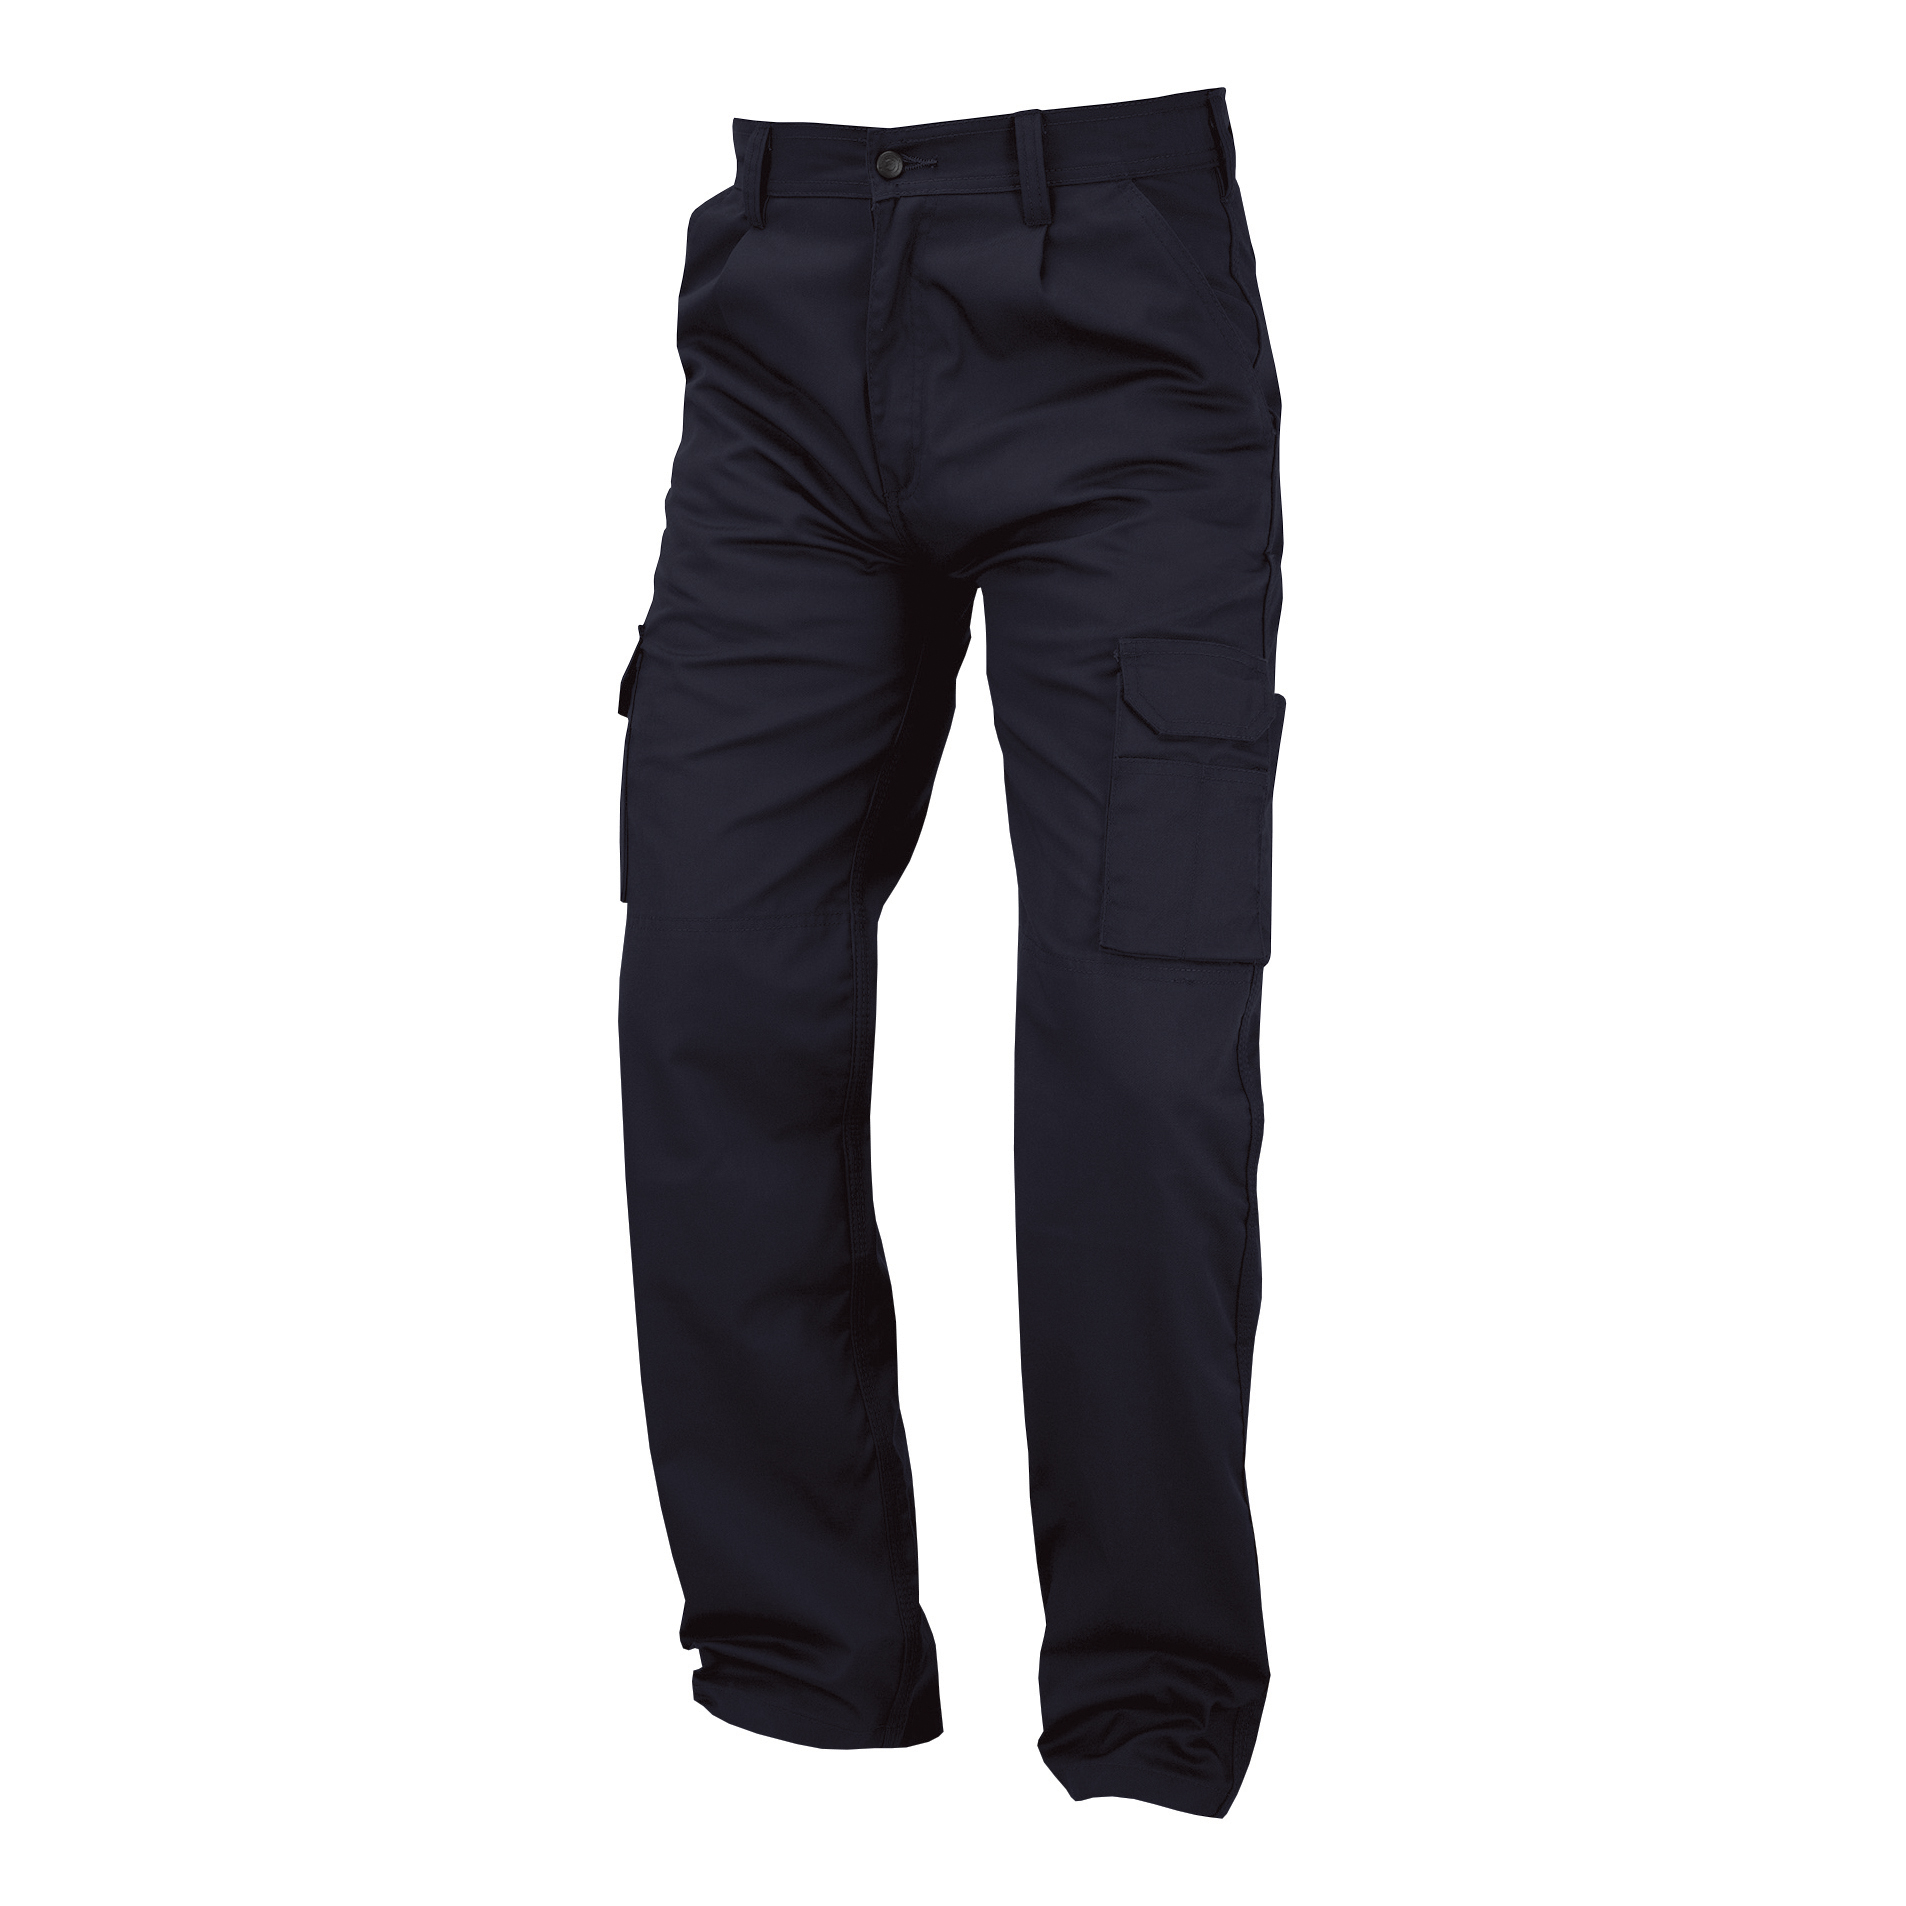 Combat Trouser Multi-functional Waist 50in Leg 29in Navy Ref PCTHWN50S *Approx 3 Day Leadtime*